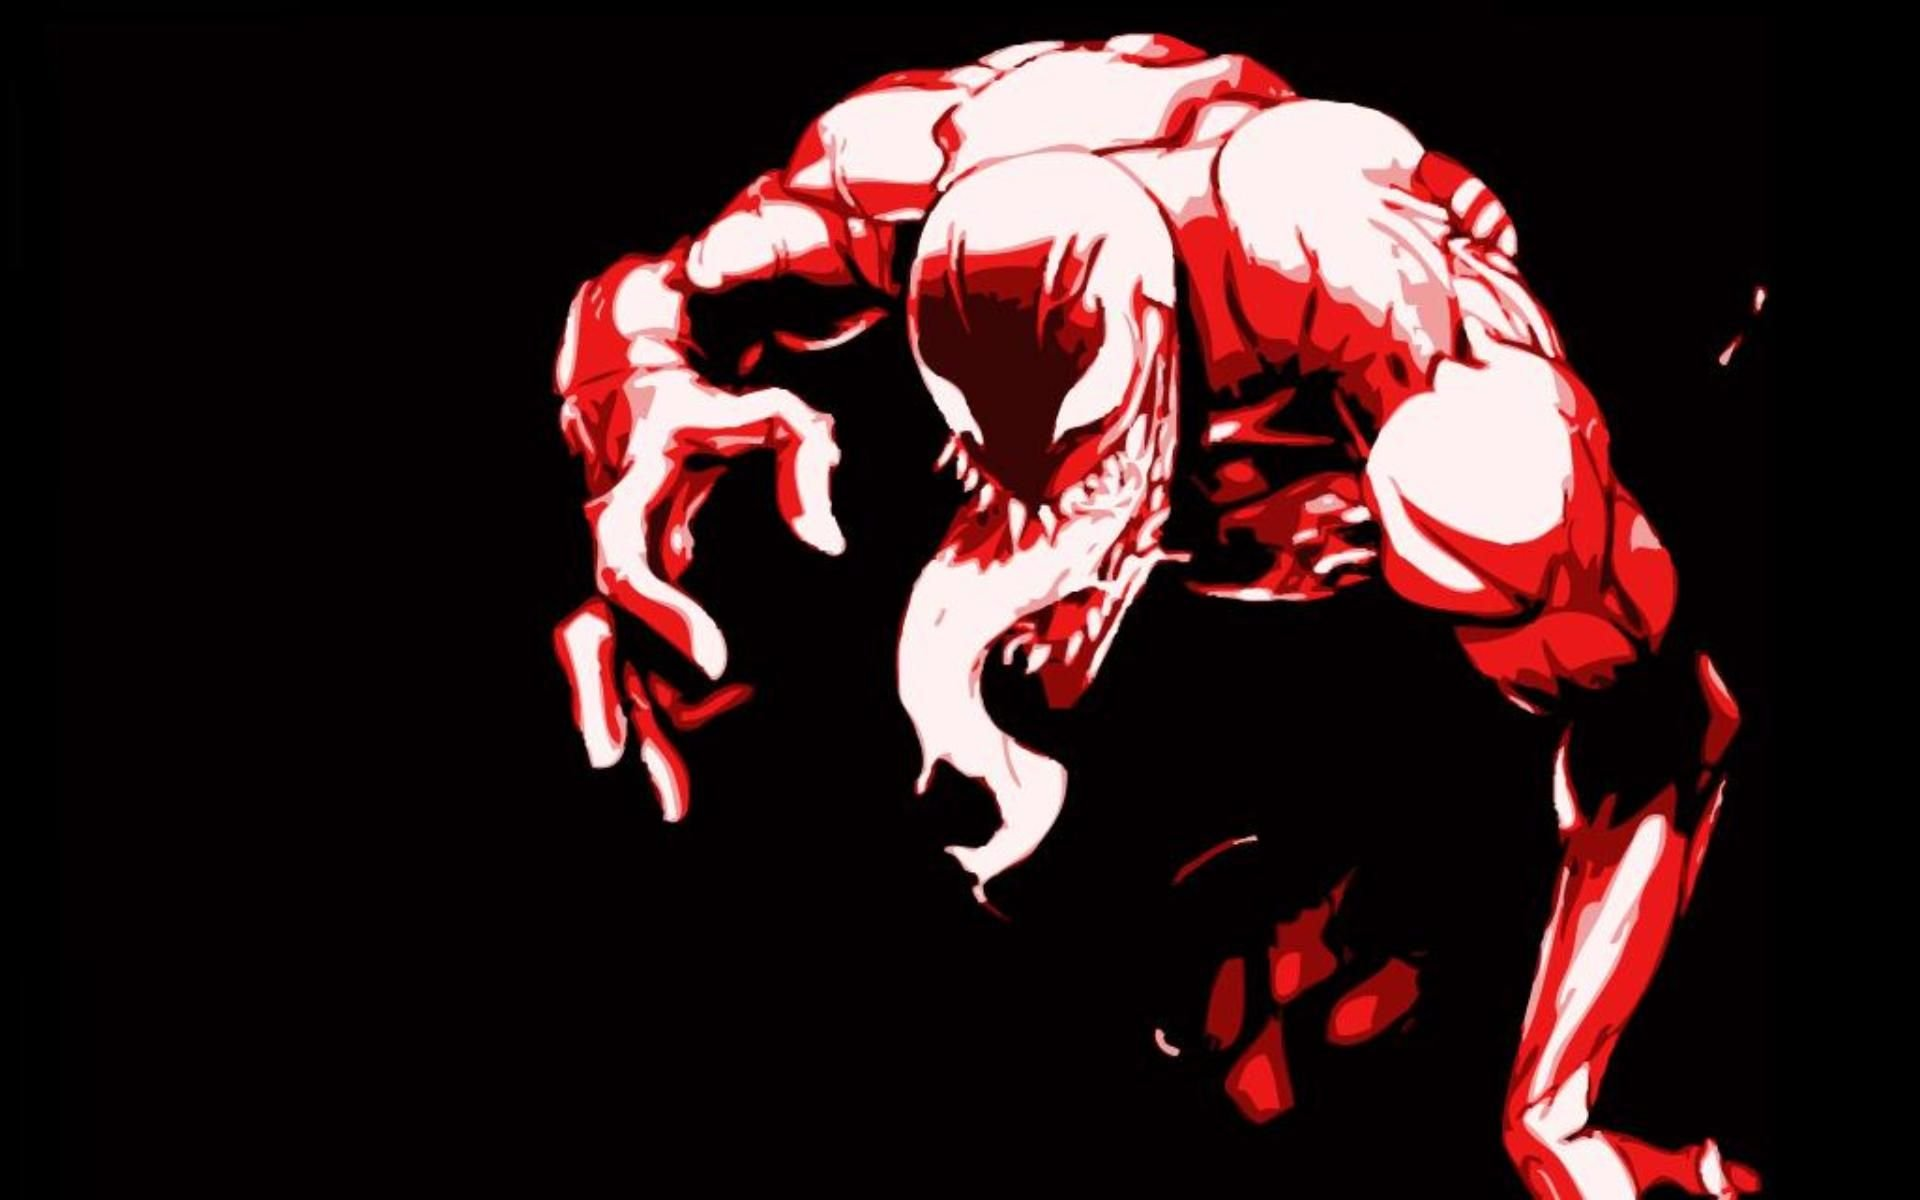 Fabulous Cool Wallpapers Of Carnage  te Carnage Vs Venom Wallpaper Hd  wallpaper  Carnage Wallpaper 1920x1200